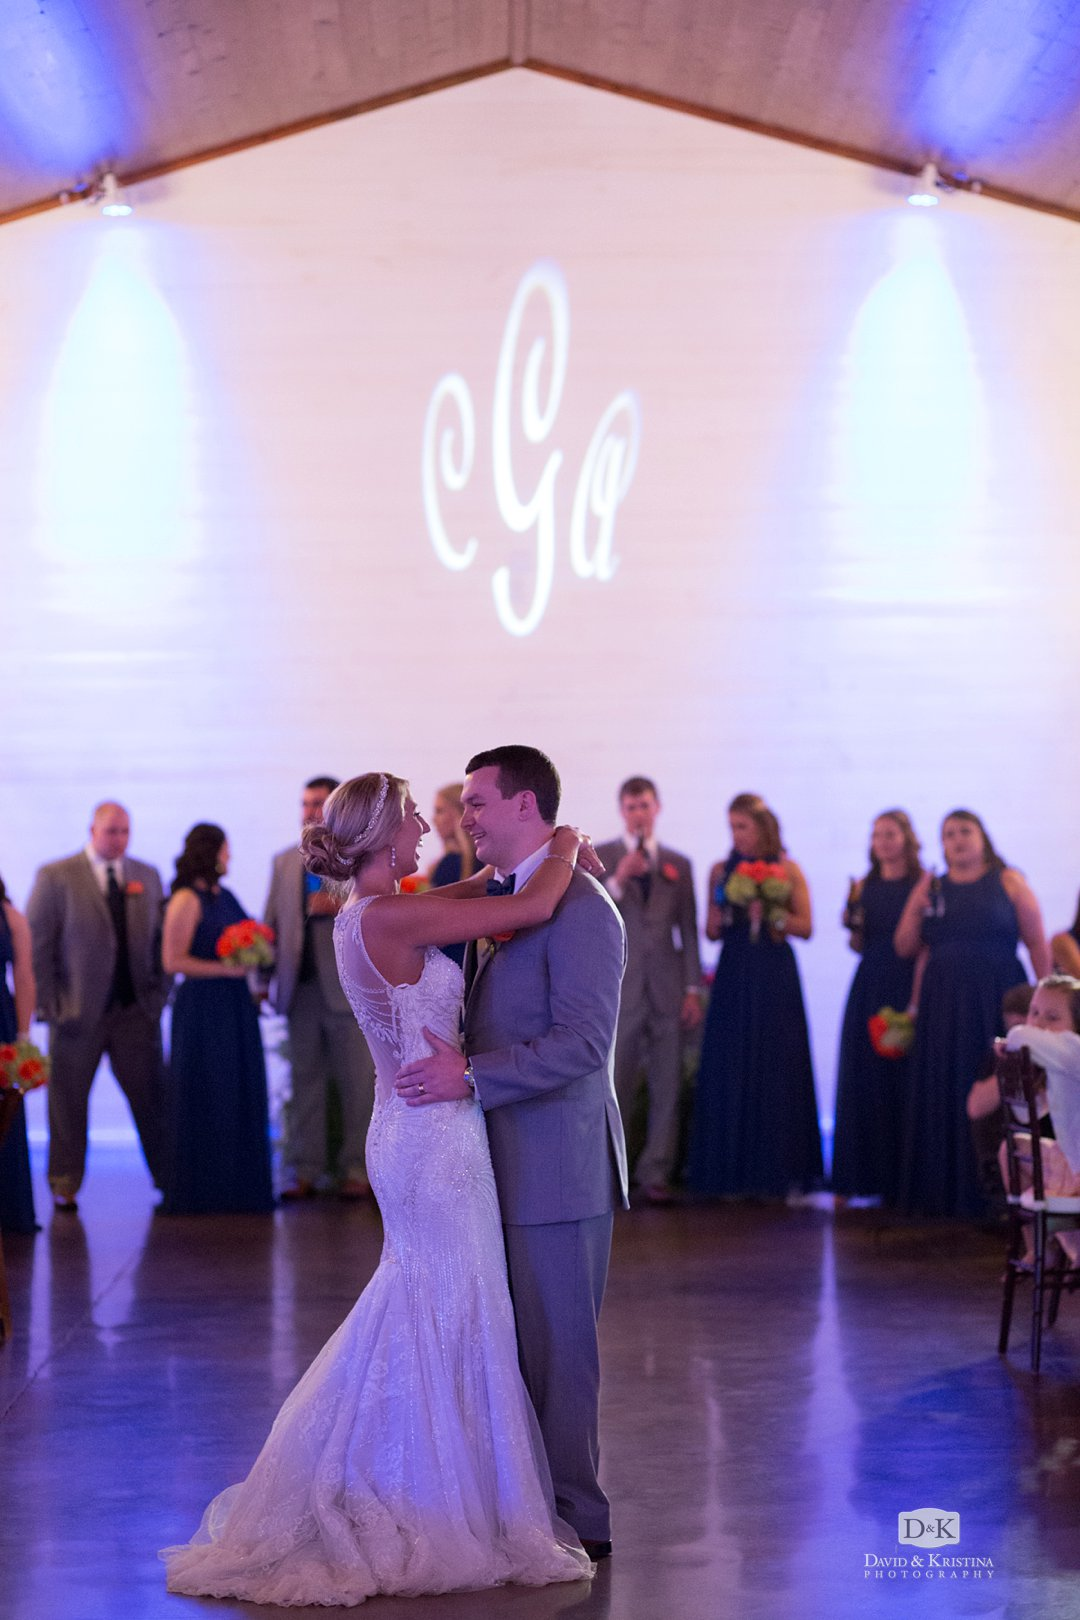 monogram light projected on wall during wedding reception